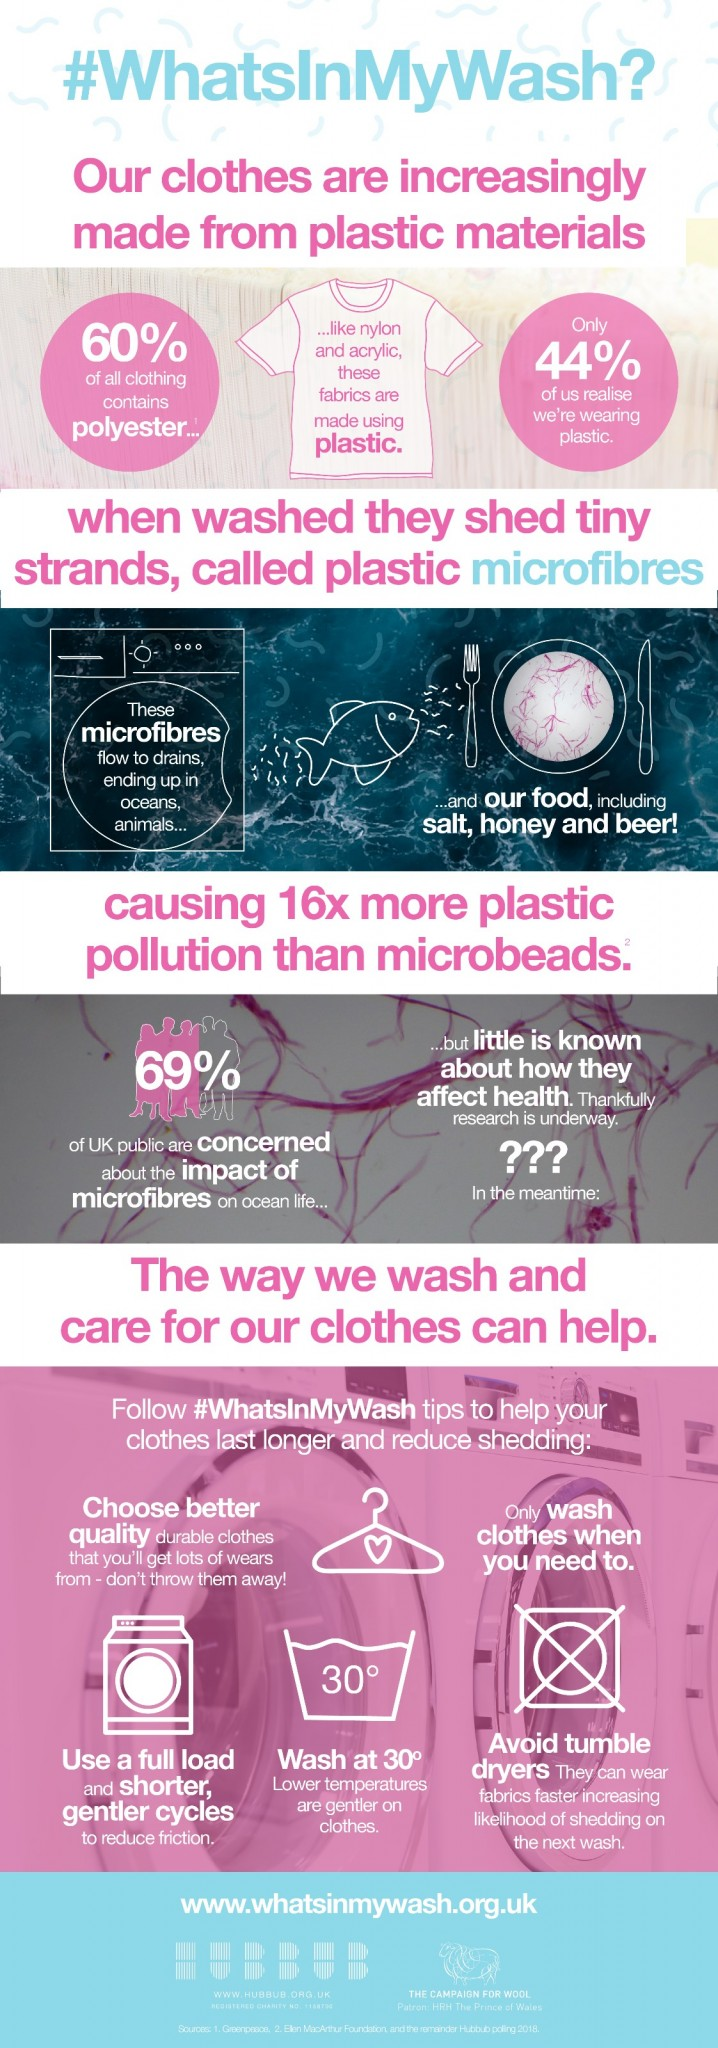 HUBBUB_Whats In My Wash Infographic_With logos-04 web